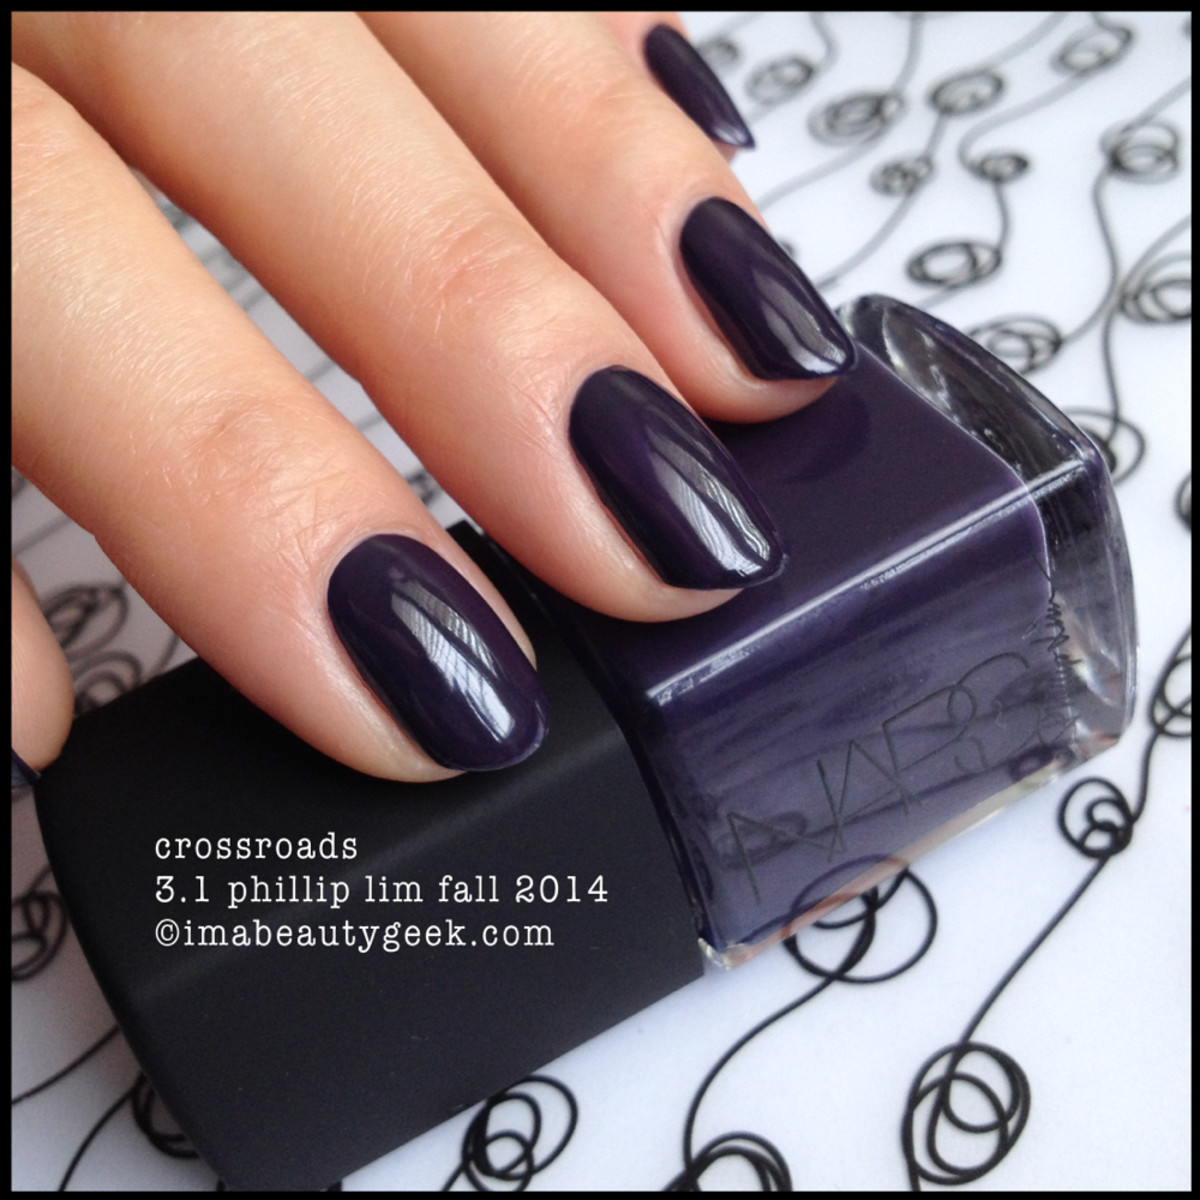 NARS Phillip Lim 3.1 Crossroads Polish Fall 2014